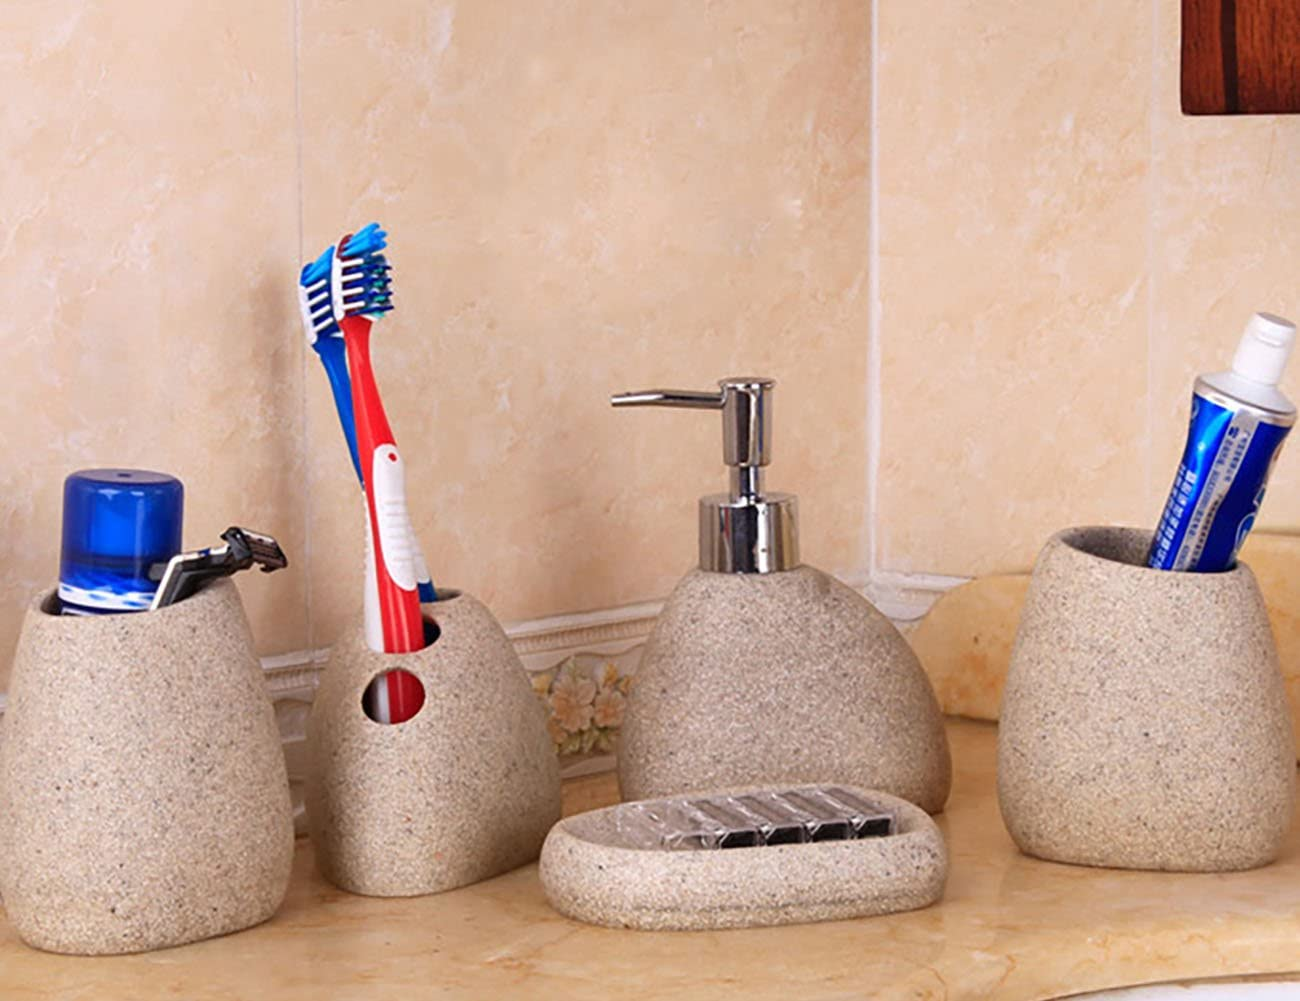 Toothbrush Holder Soap Dispenser ShiyiUP 5 Pcs Bathroom Sccessories Set of Ceramic Soap Dish Toothbrush Cup with Gift Box